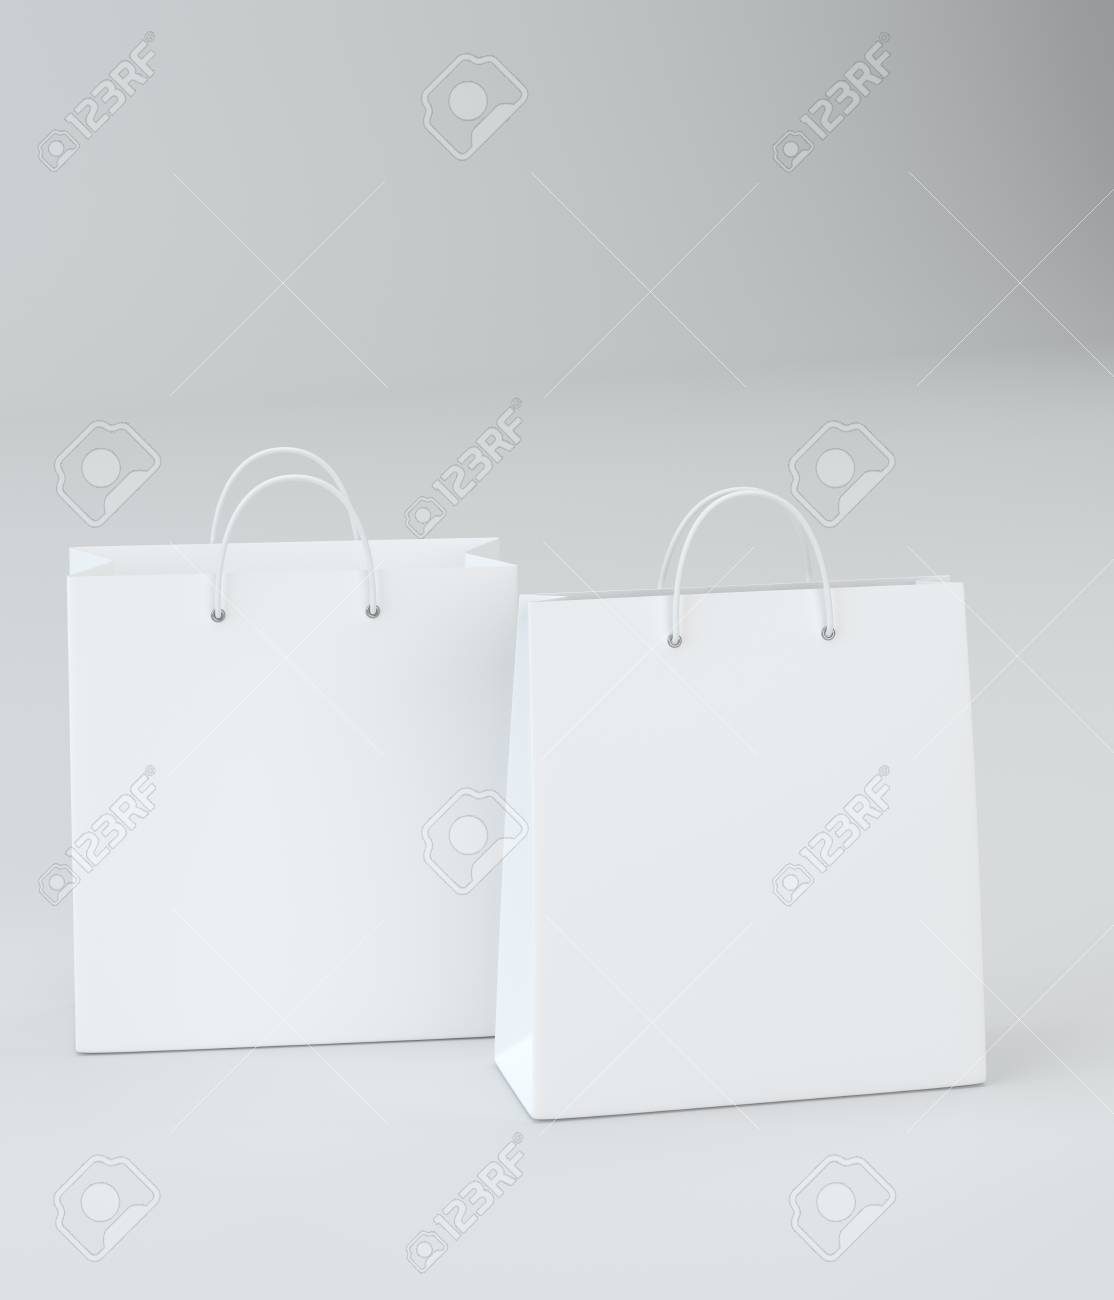 white paper bags for luxury store on studio background template